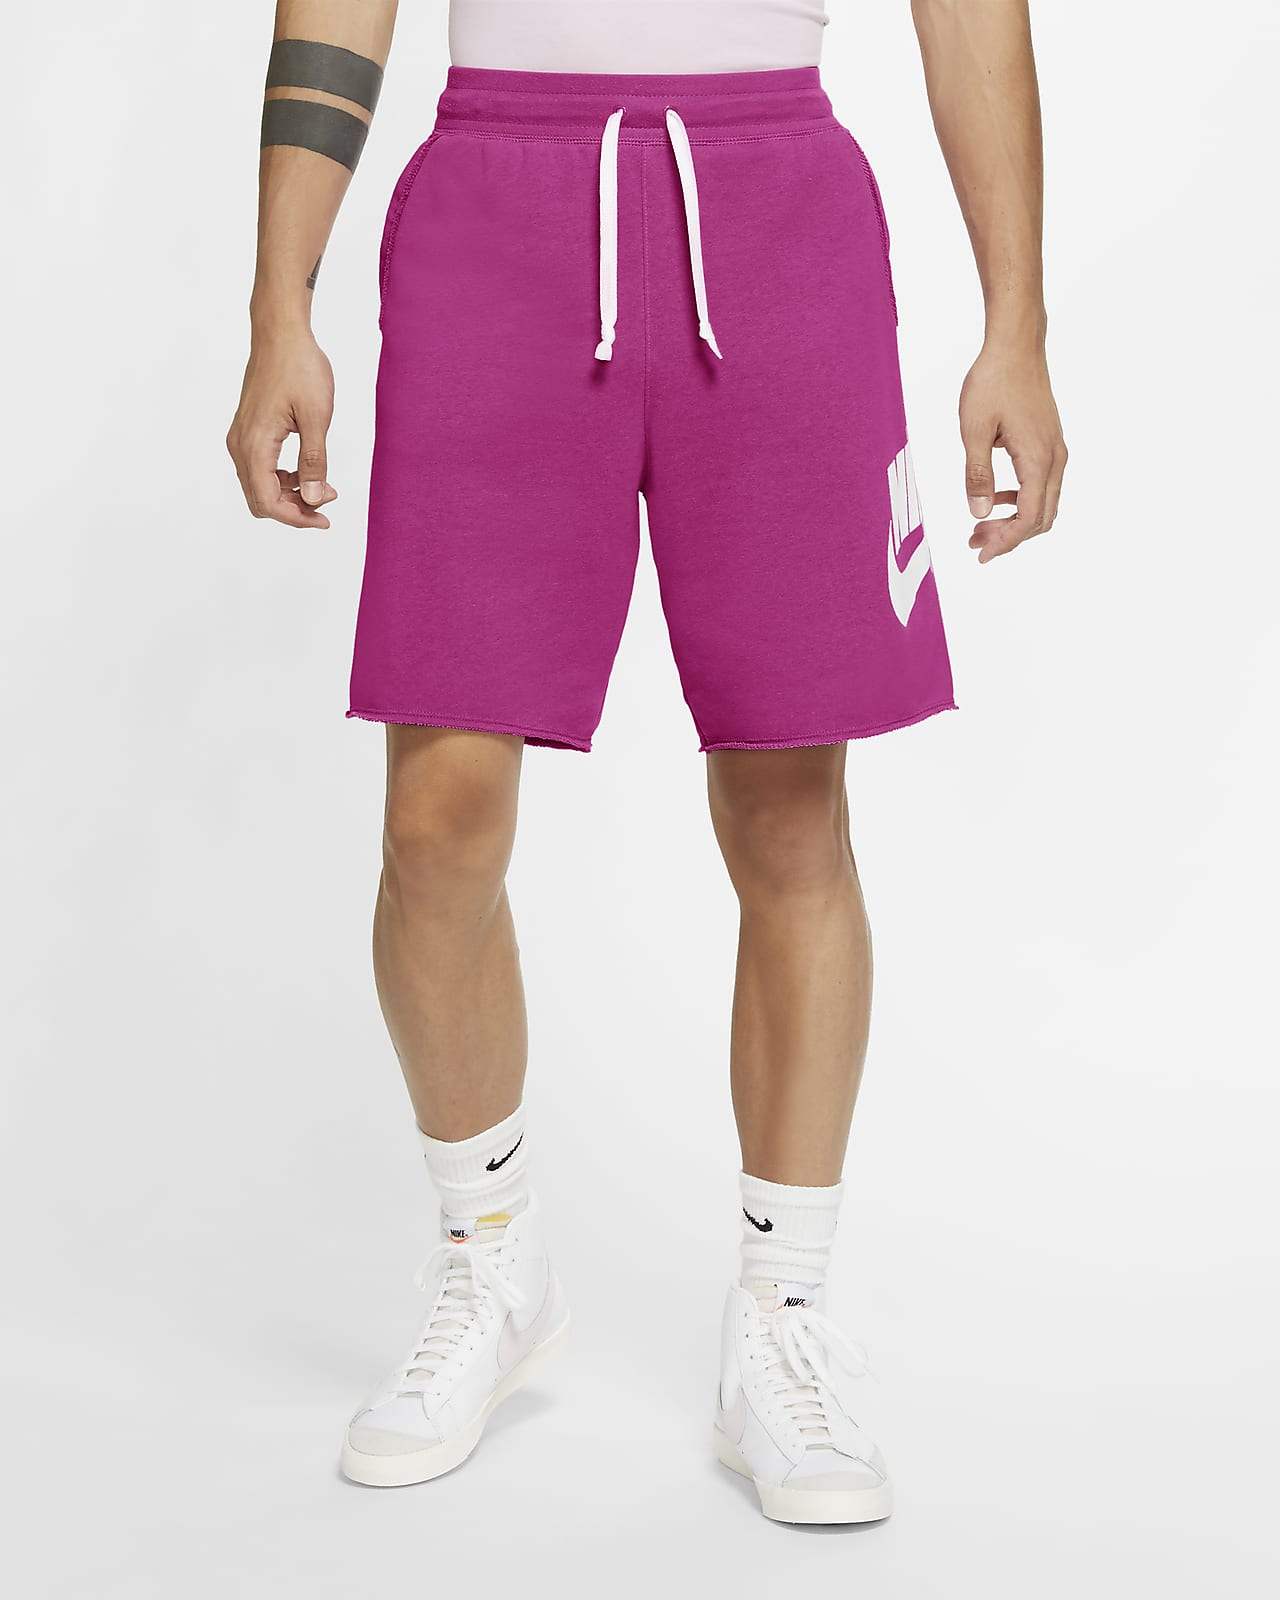 Nike Sportswear Alumni Men's French Terry Shorts